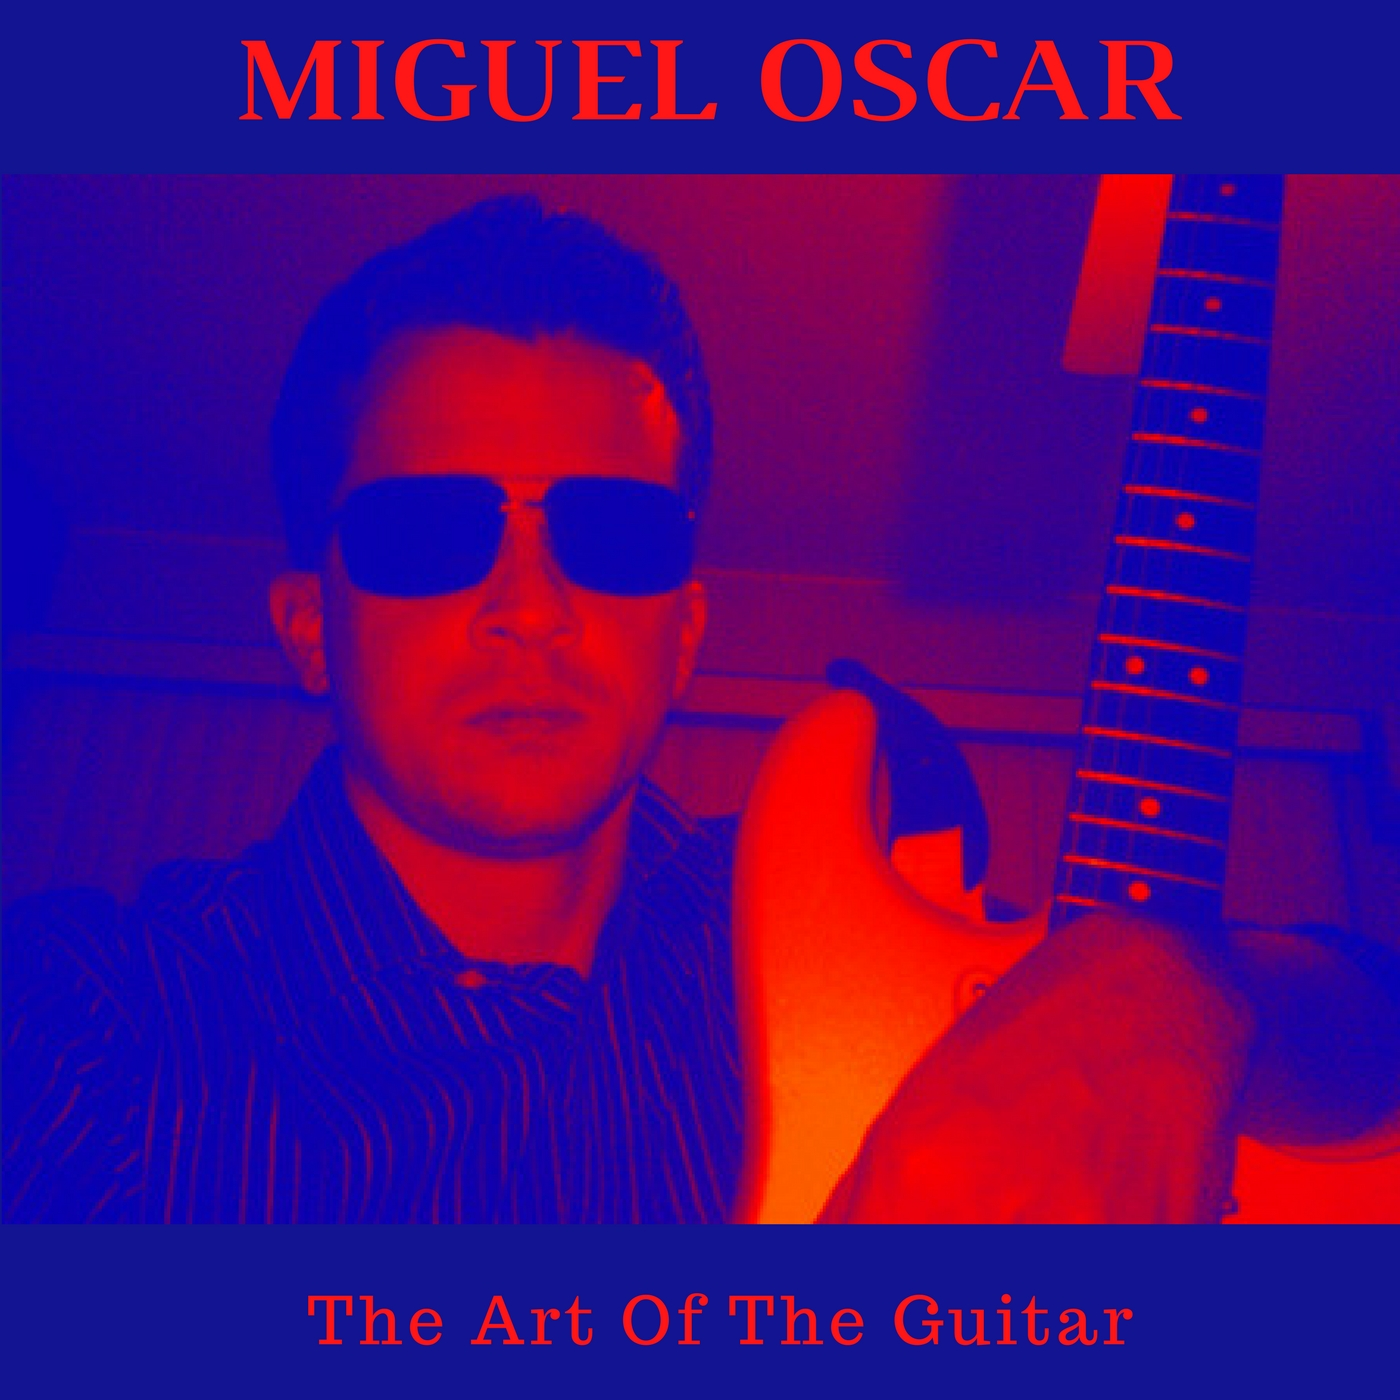 Miguel Oscar - The Art of the Guitar